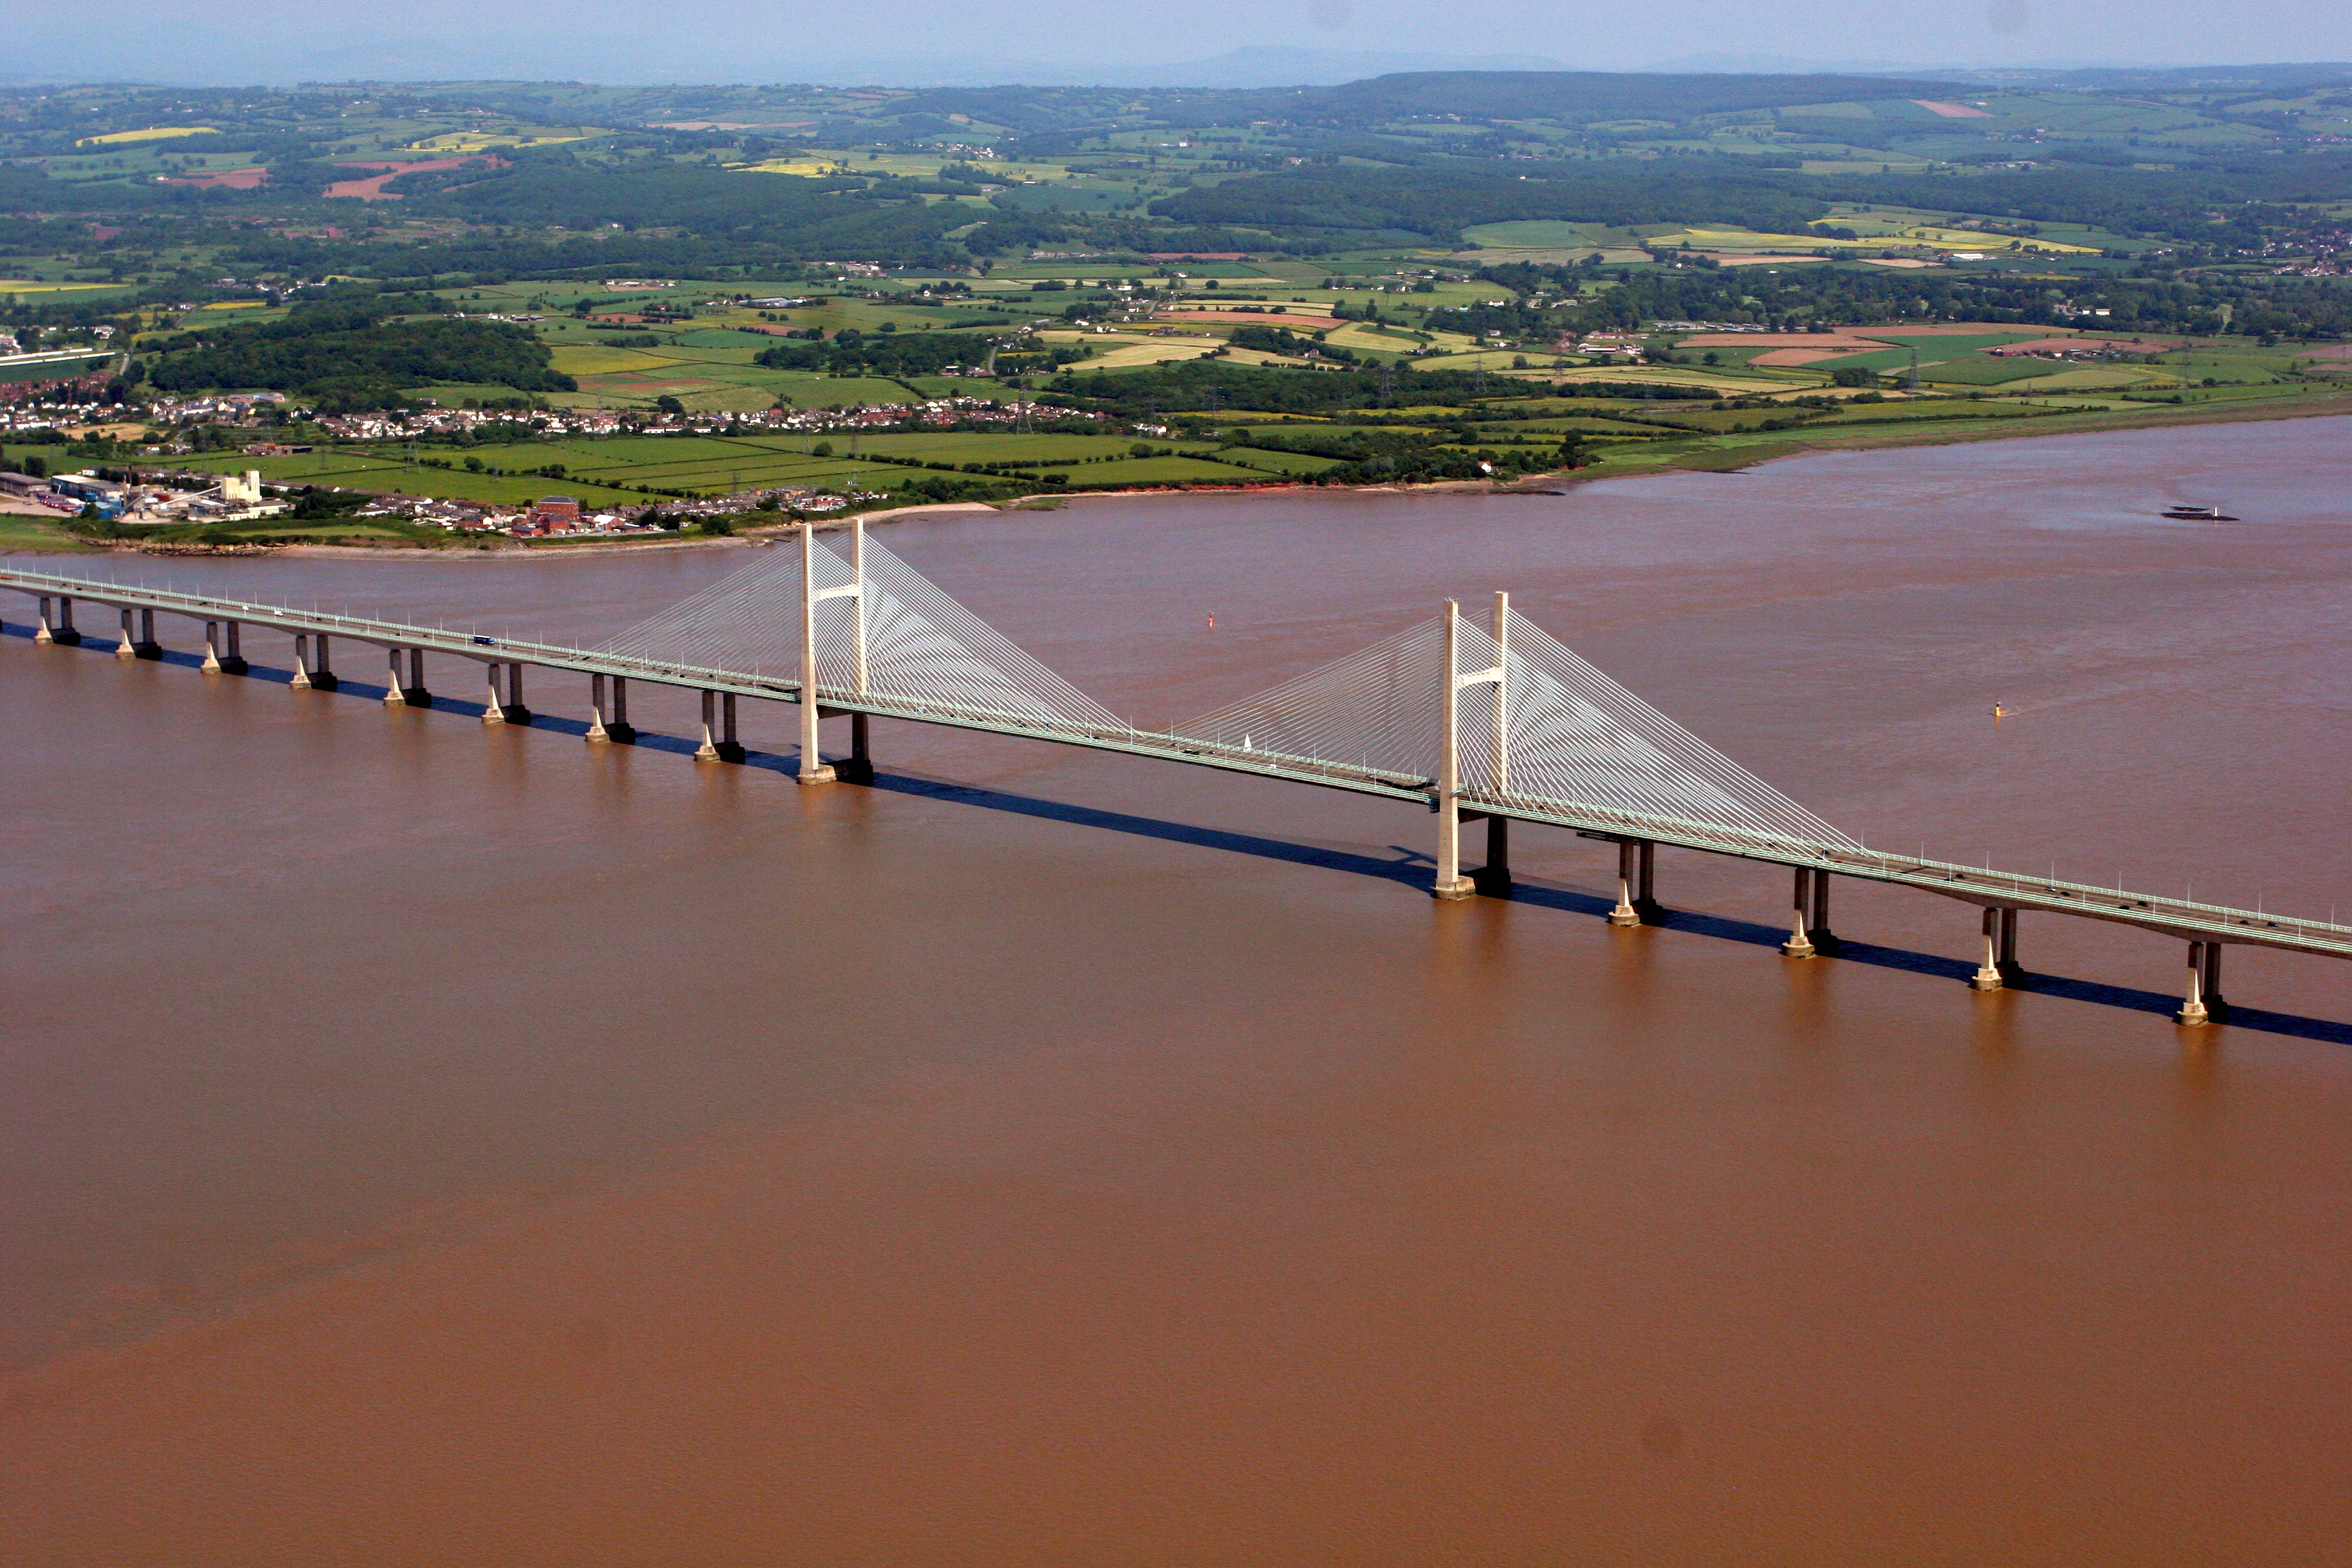 Aerial view of the M4 Second Severn Bridge Crossing over the estuary